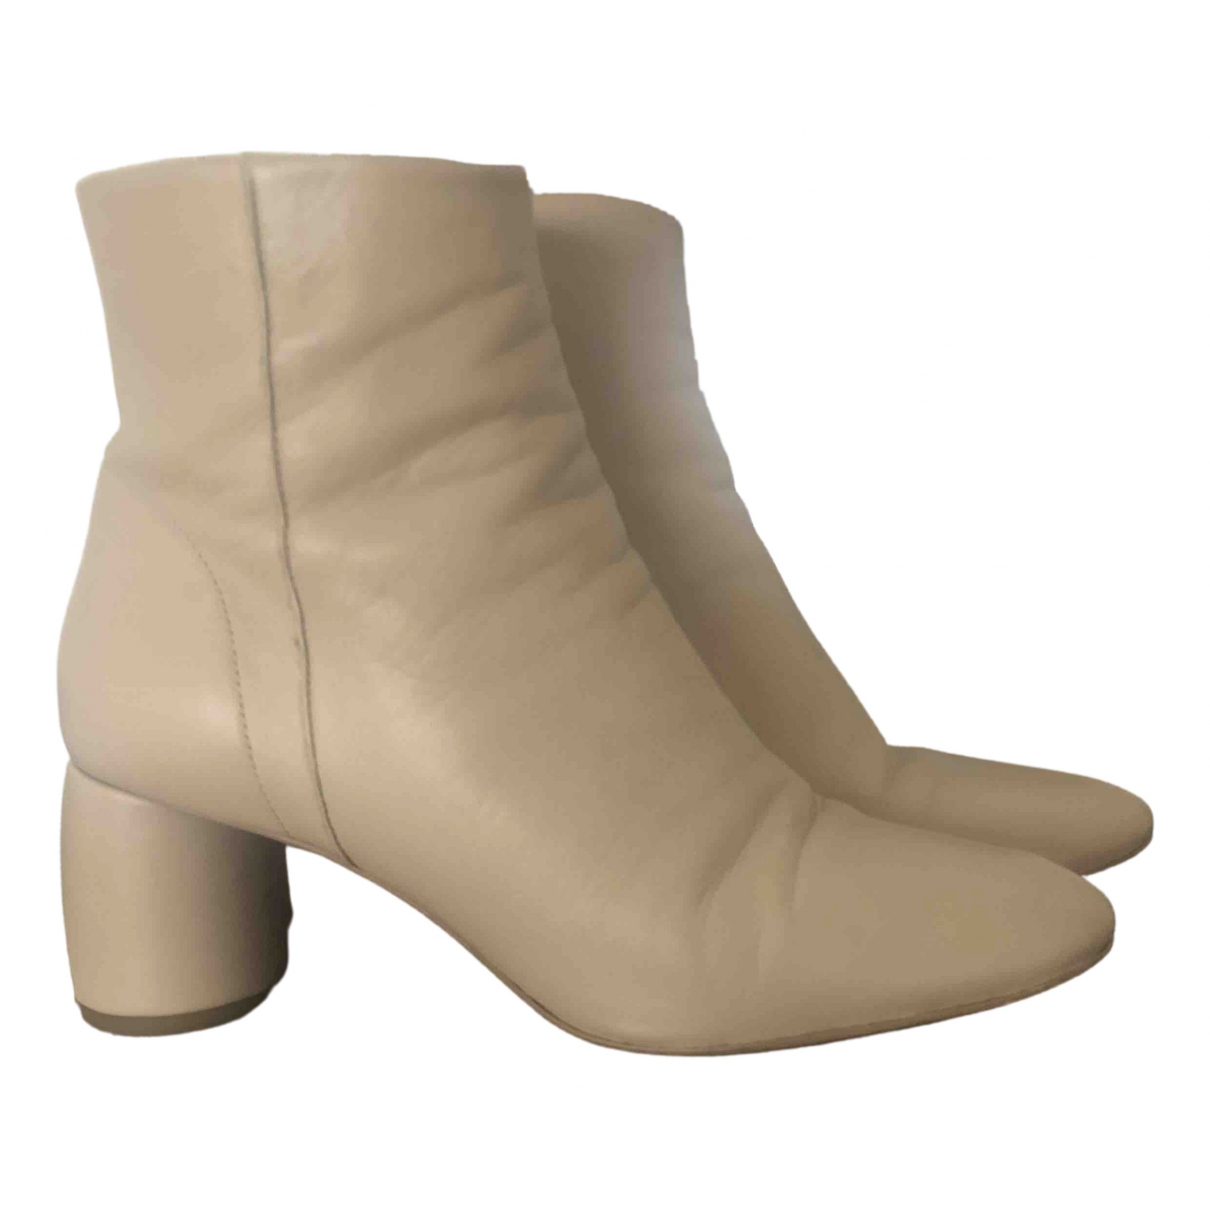 & Stories \N Beige Leather Boots for Women 39 EU